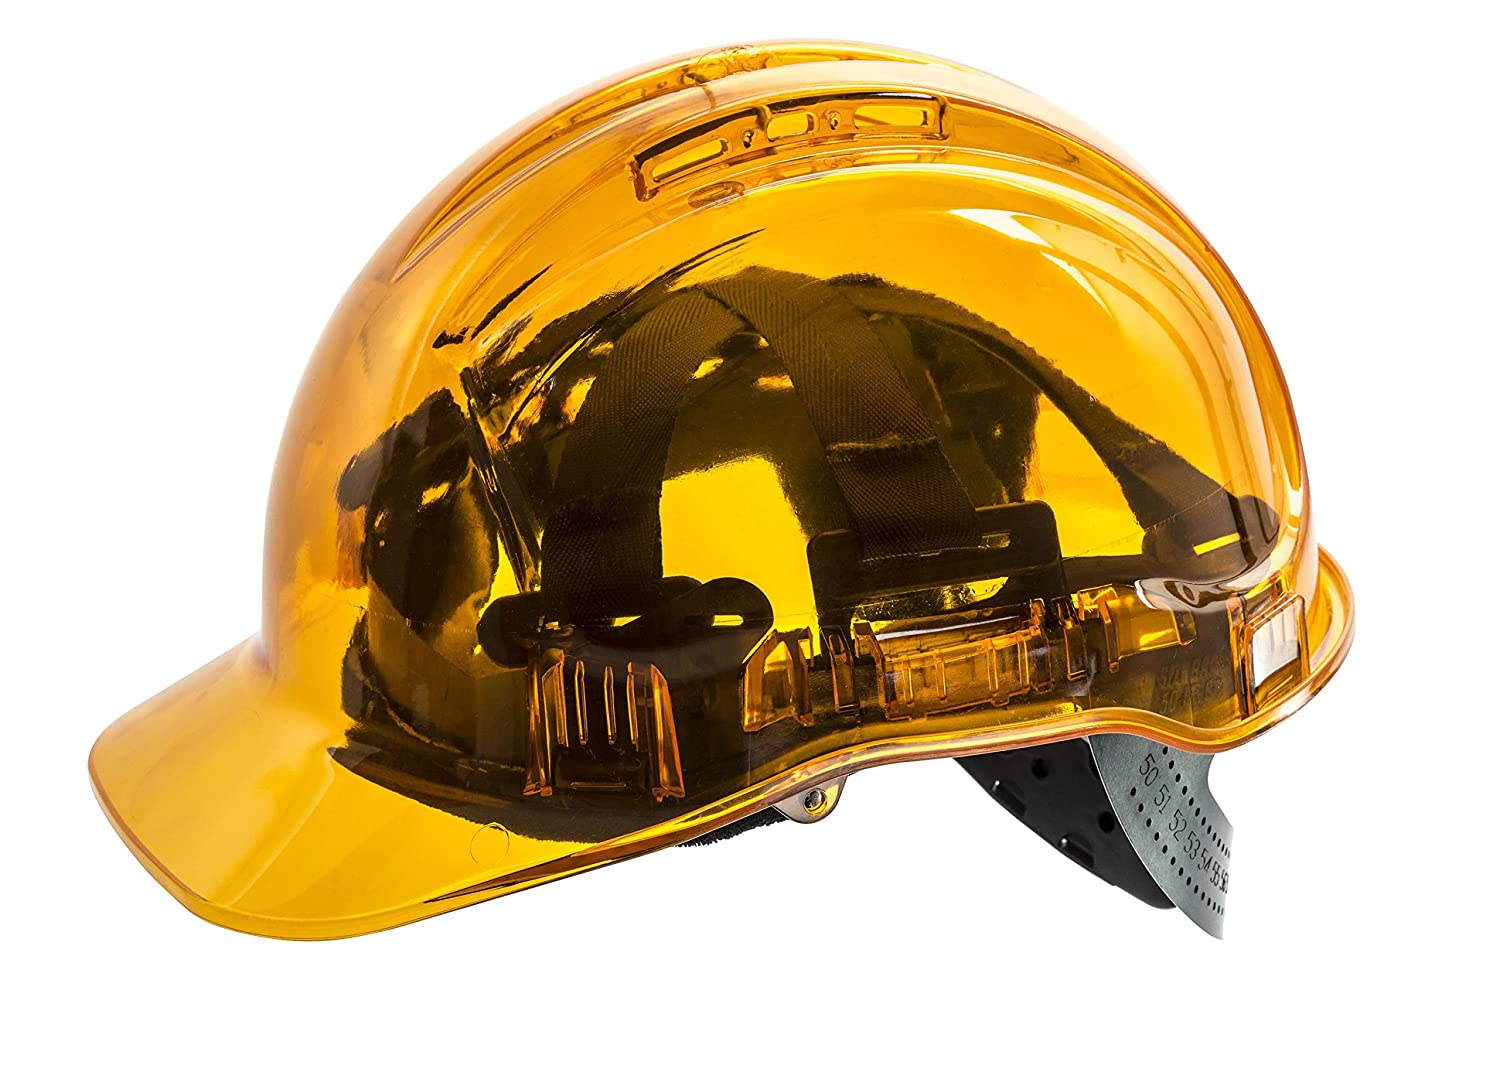 Portwest PV50BLU Series PV50 Peak View Translucent Hard Hat Helmet, Regular, Blue Portwest Clothing Ltd